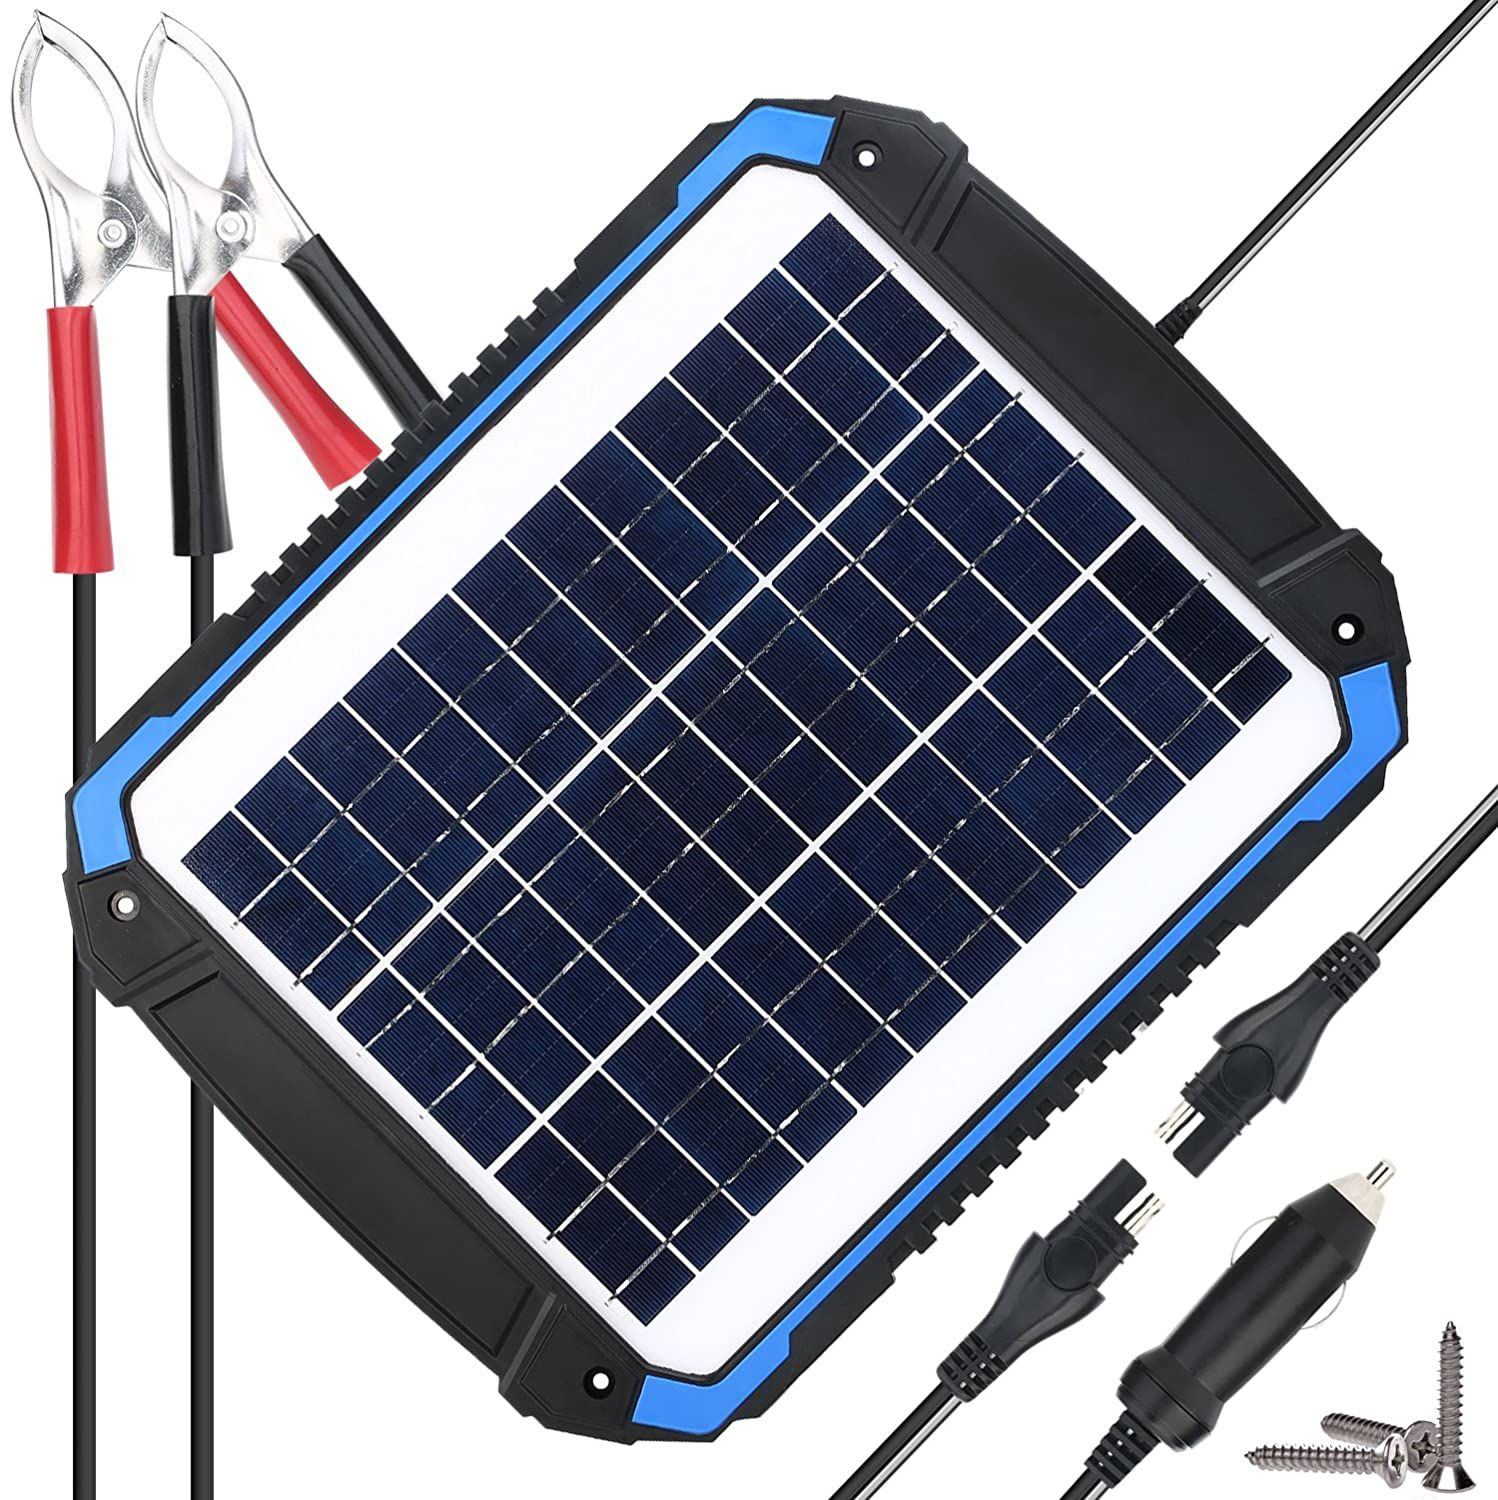 Suner Power 12v Solar Car Battery Charger And Maintainer Portable 12w Solar Panel Trickle Charging Kit For Automoti In 2020 Car Battery Charger Solar Car Car Battery